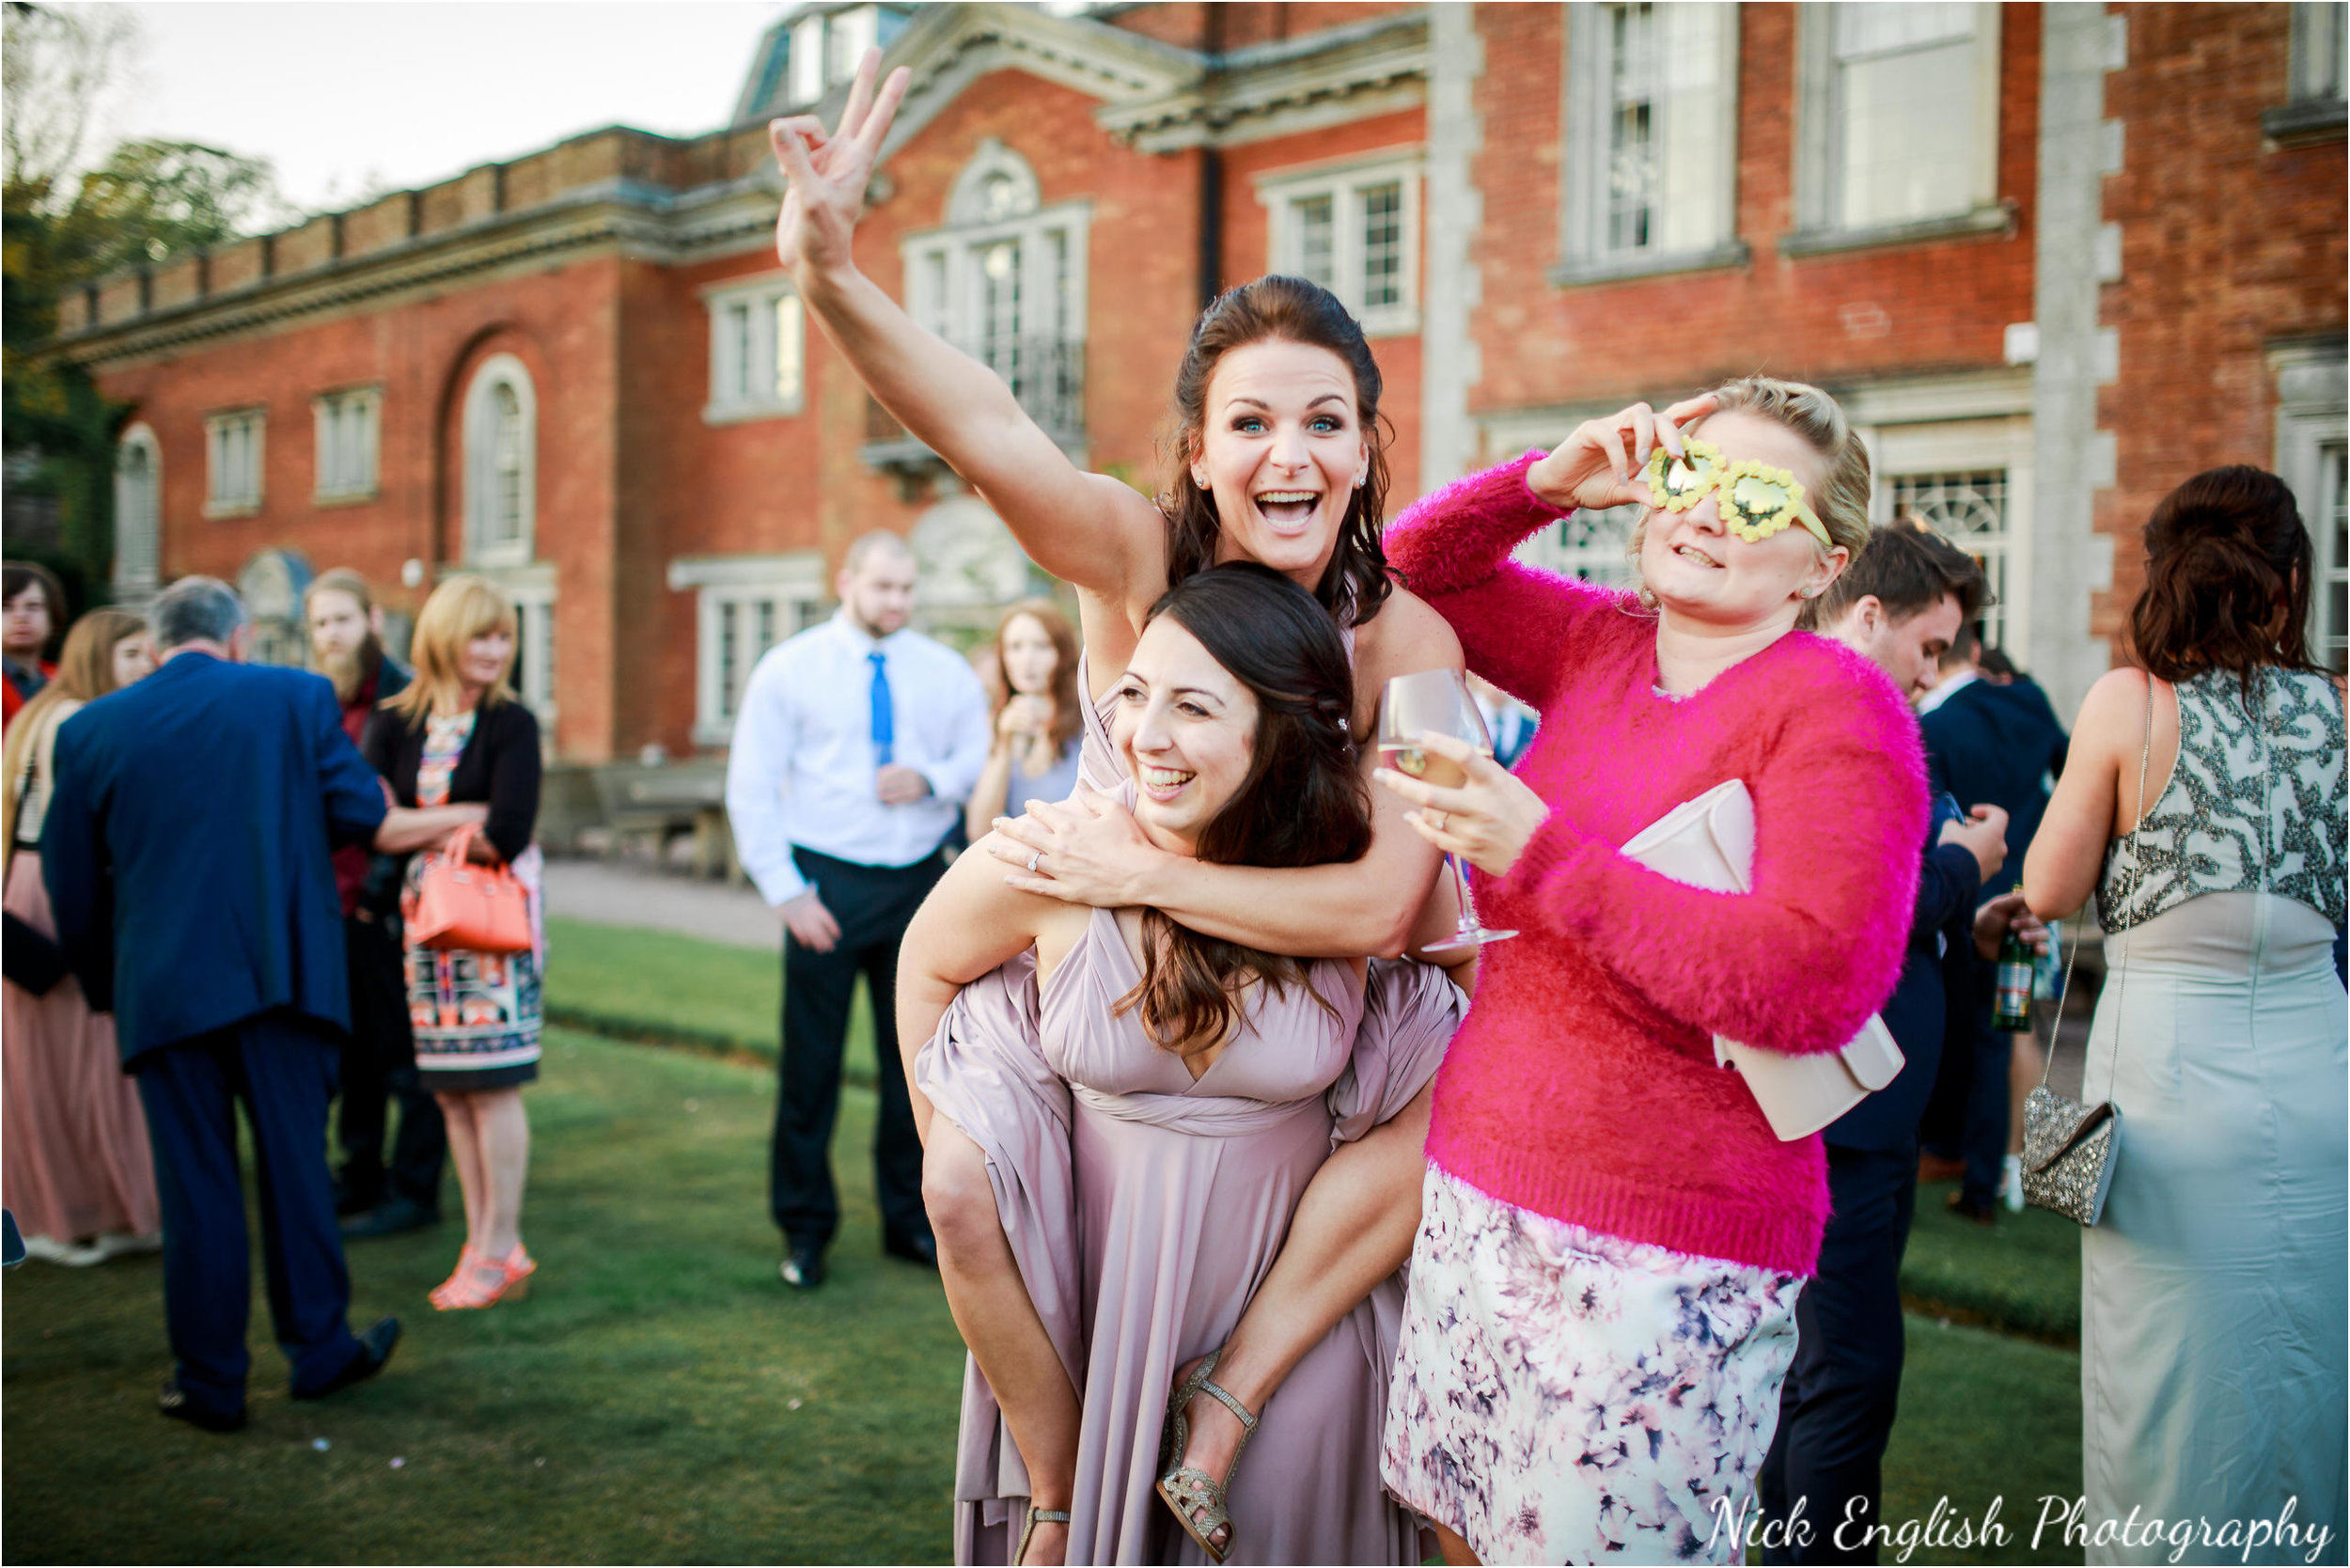 Alison James Wedding Photographs at Eaves Hall West Bradford 246jpg.jpeg